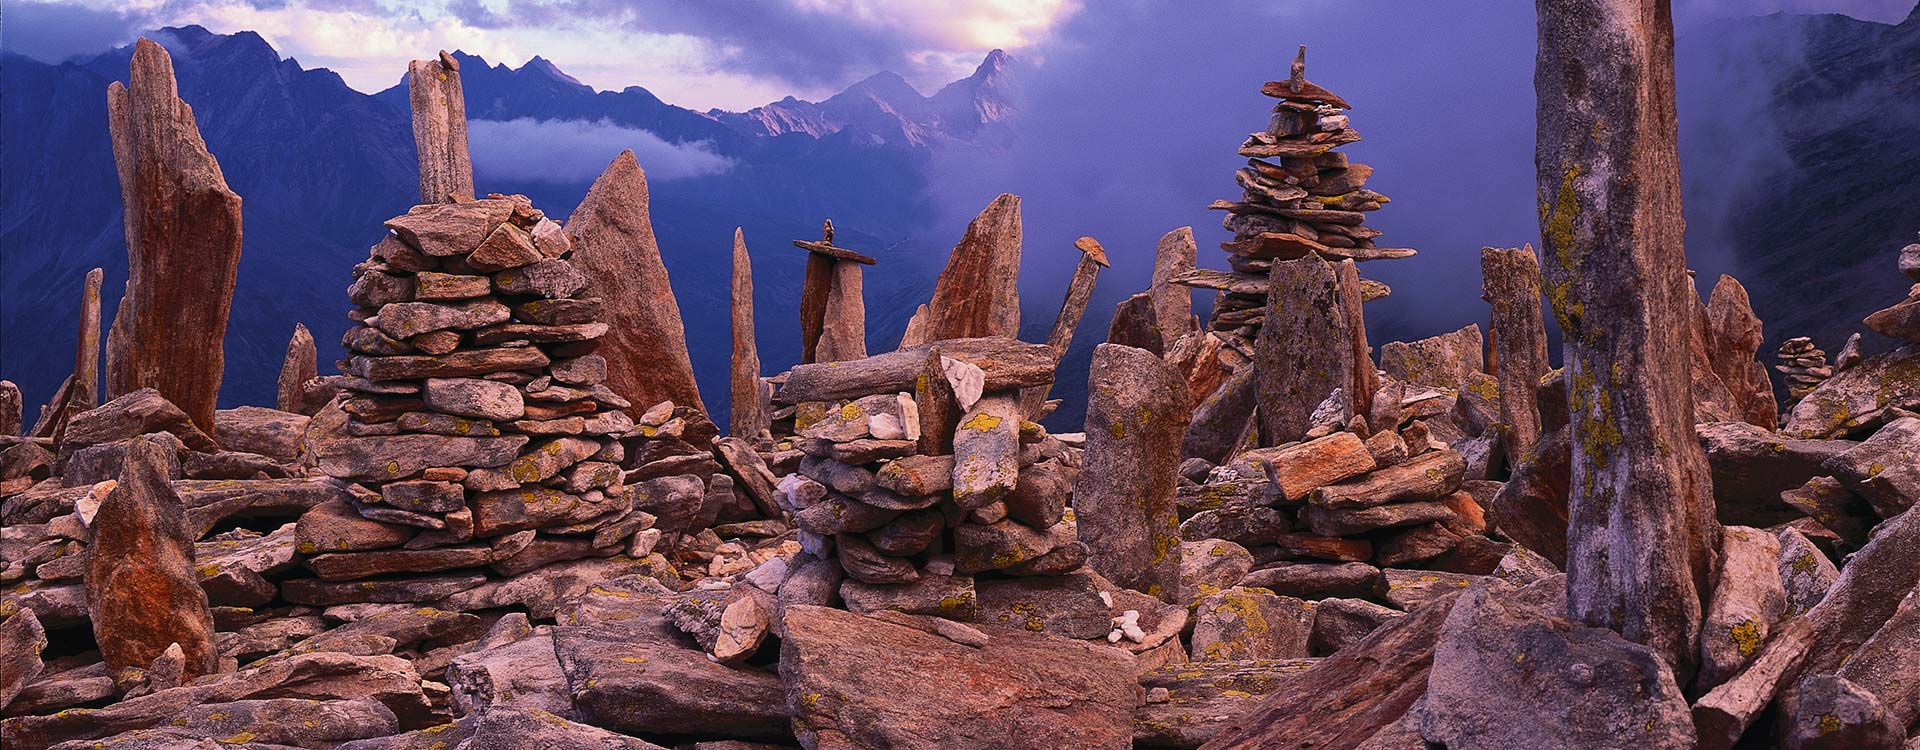 magical Experiences are awaiting you on the mountains - there you go